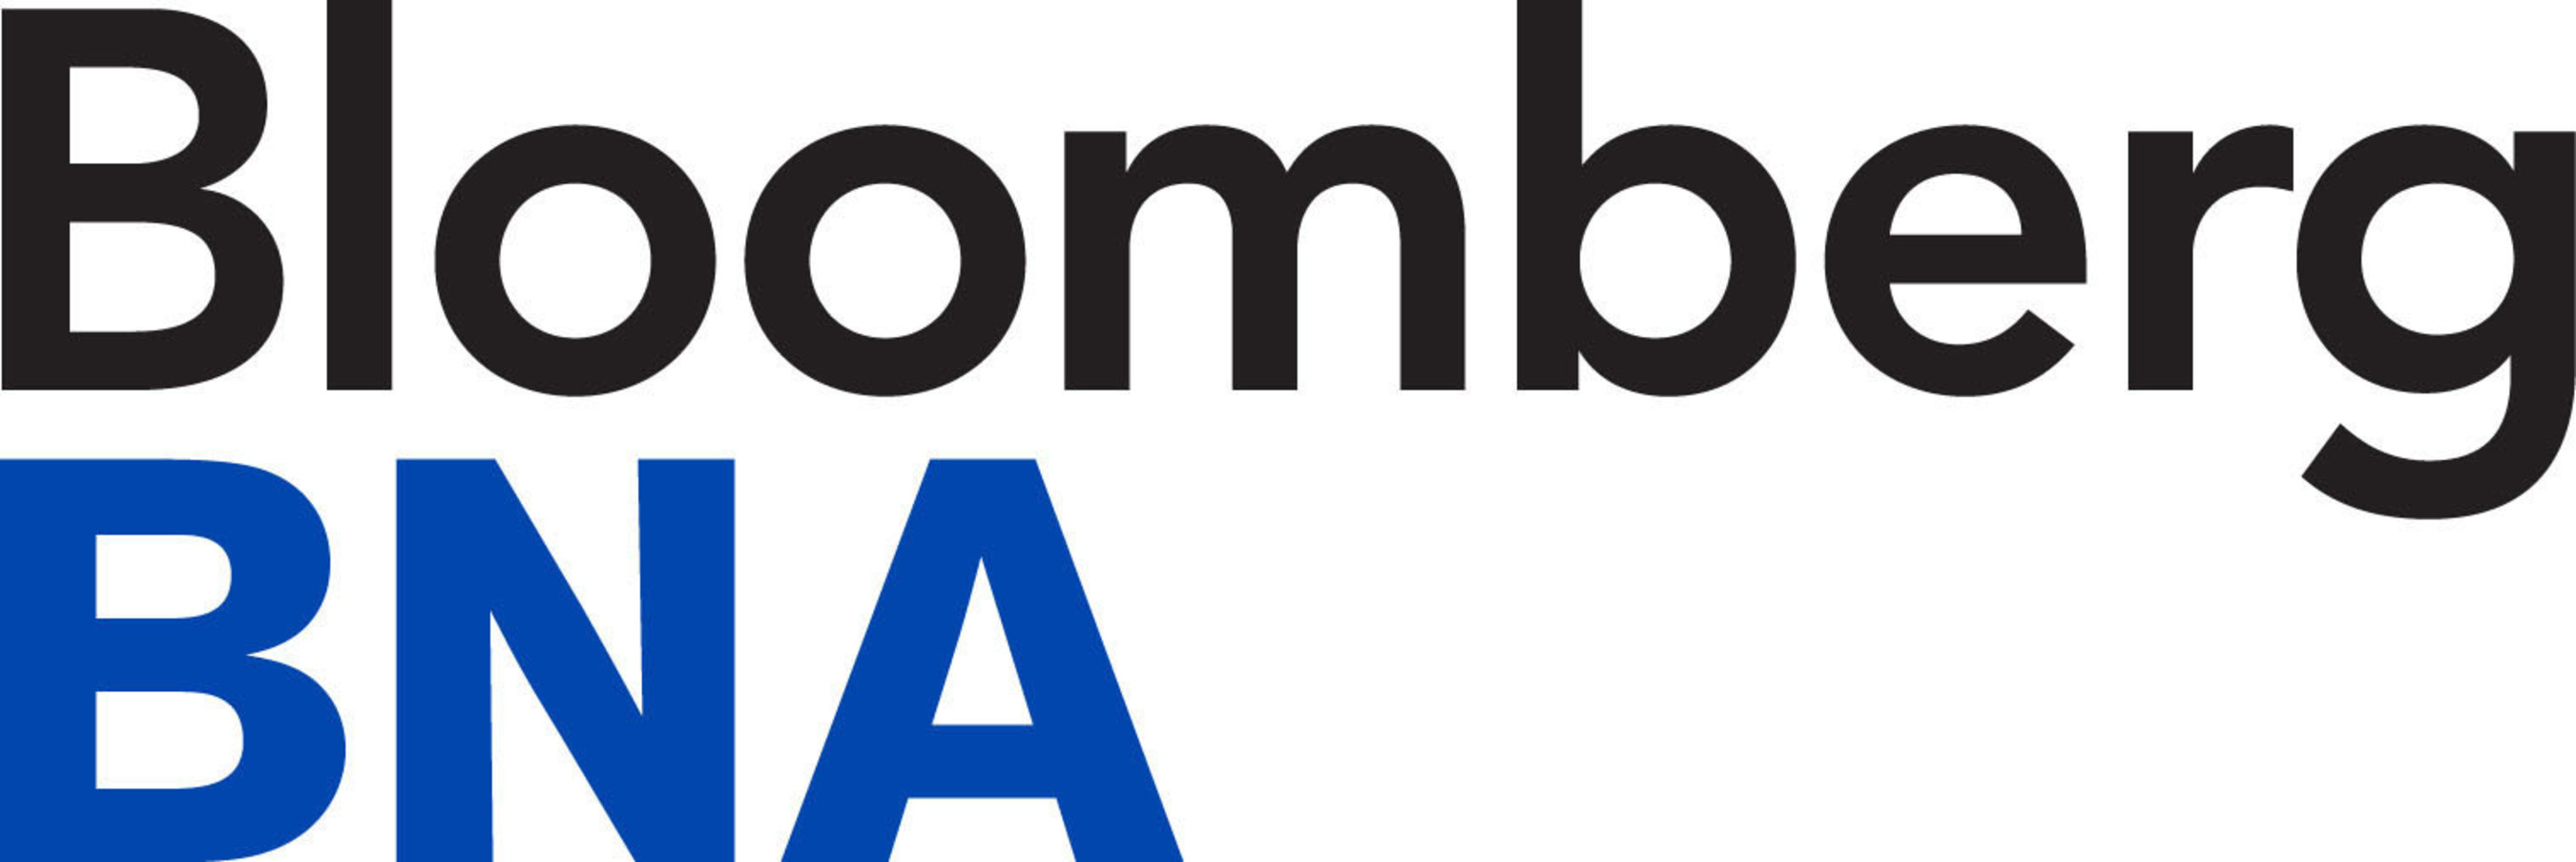 Bloomberg BNA Hosting June 11 Intellectual Property Innovation And Leadership Event